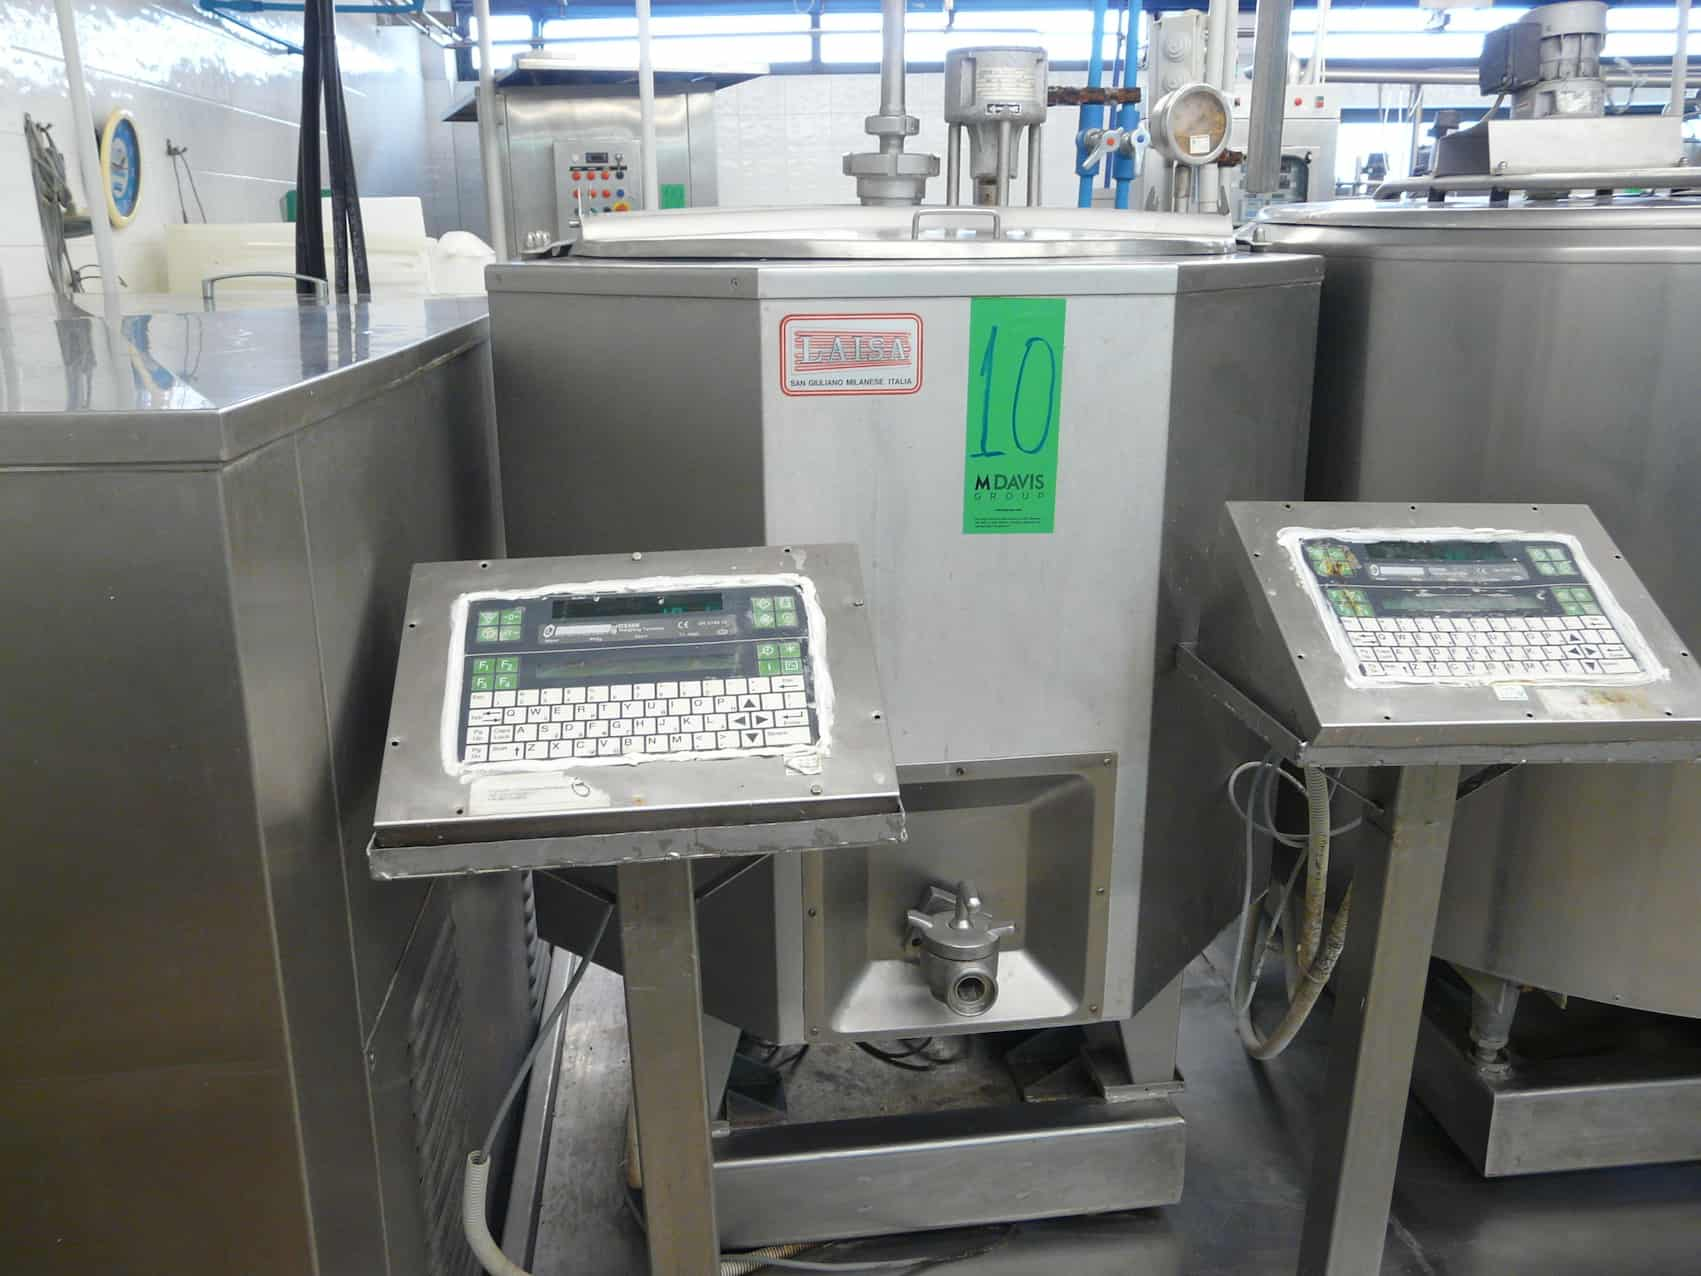 Mixing/Cooling Tank for Ice Cream 250L with Agitator, Type LAISA, Can be Connected to Chiller, Can be Connected to CIP System, Contains Scales with  Display Y.O.M.: 1985